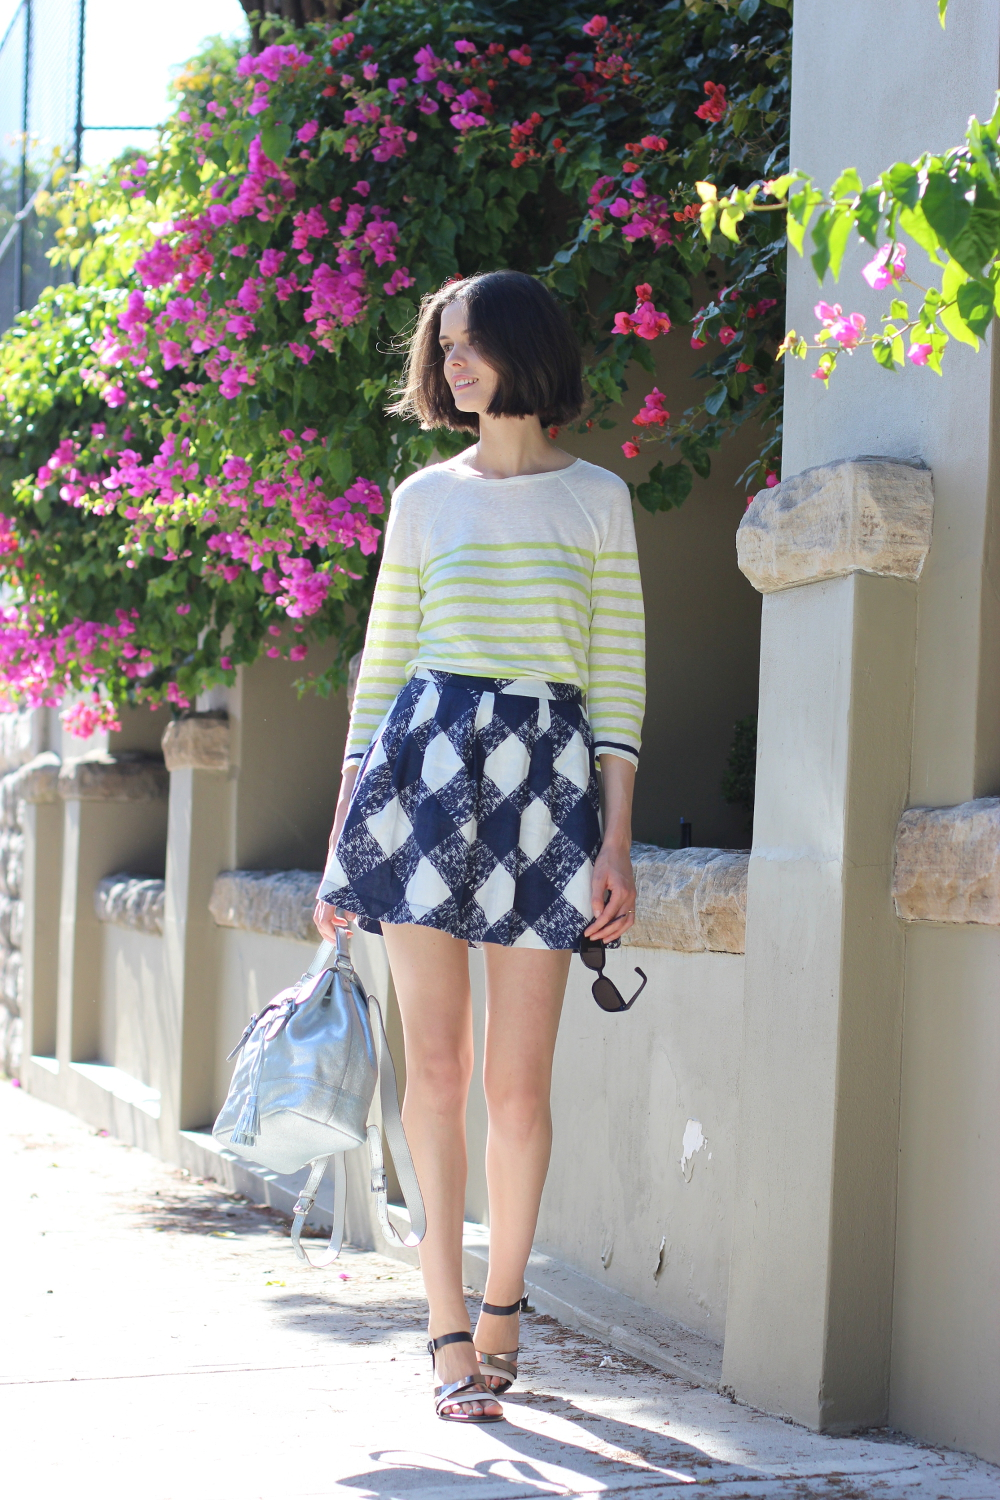 BYCHILL BLOG | Chloe Hill on the streets of Valcluse NSW wearing Boden clothing